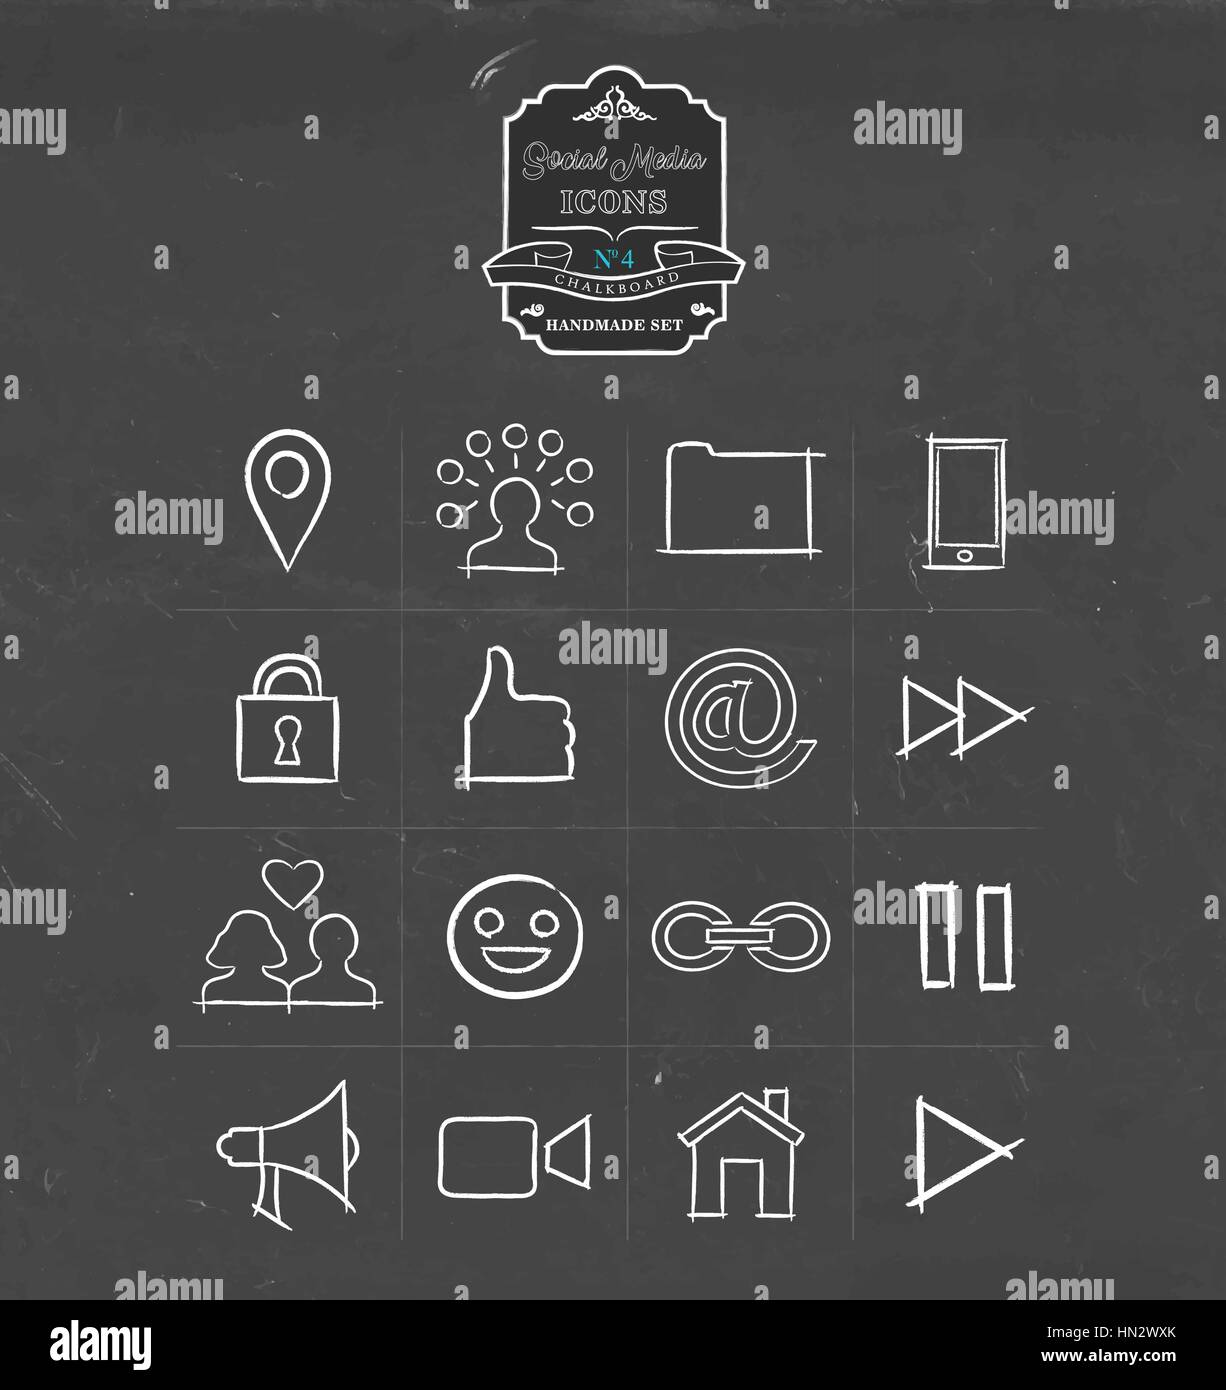 Social media hand drawn chalkboard icon collection, set of ...